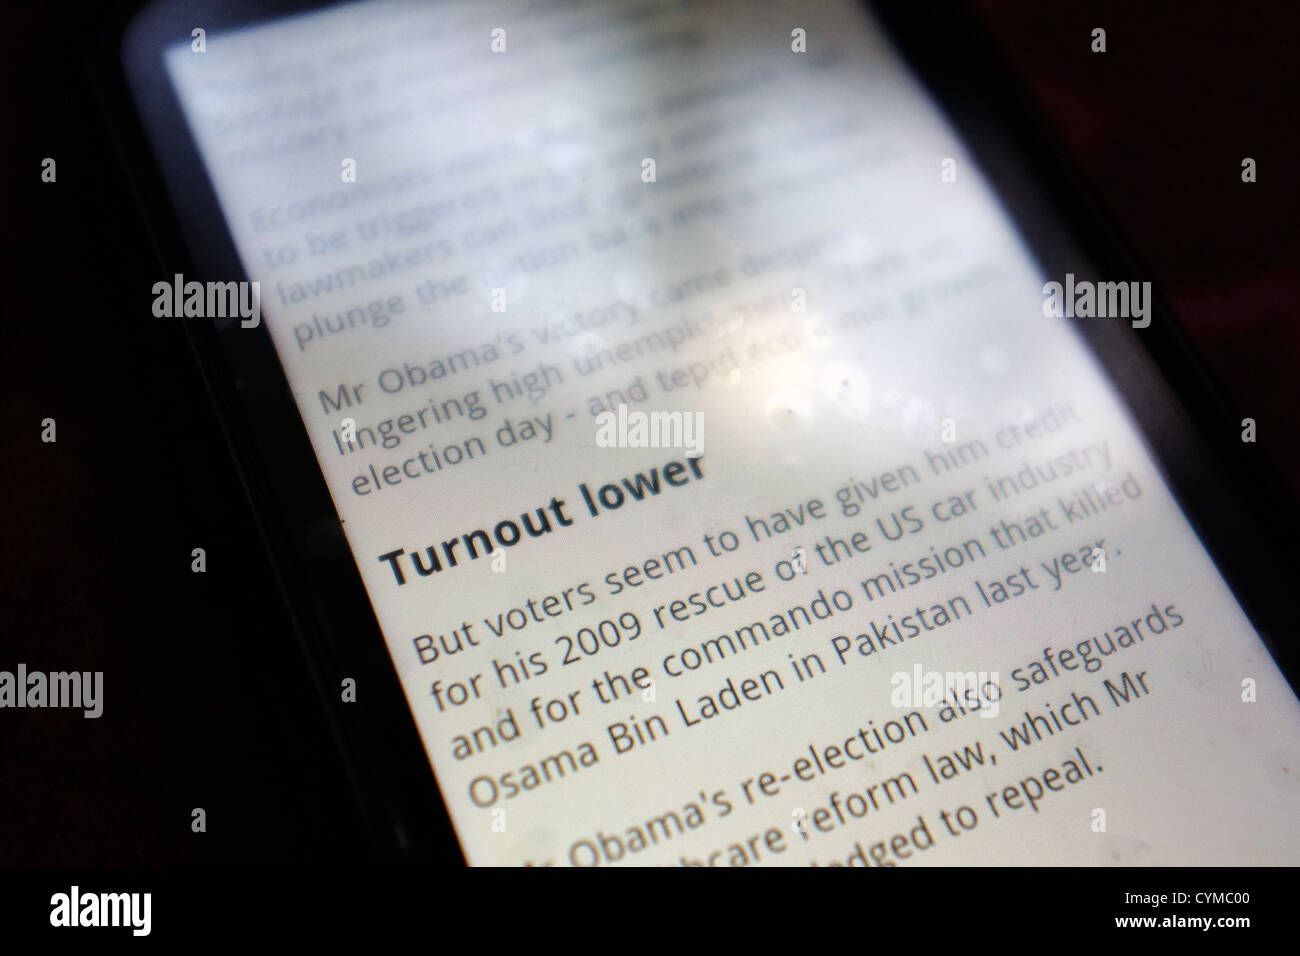 A smartphone screen showing news of lower voter turnout following an election. - Stock Image